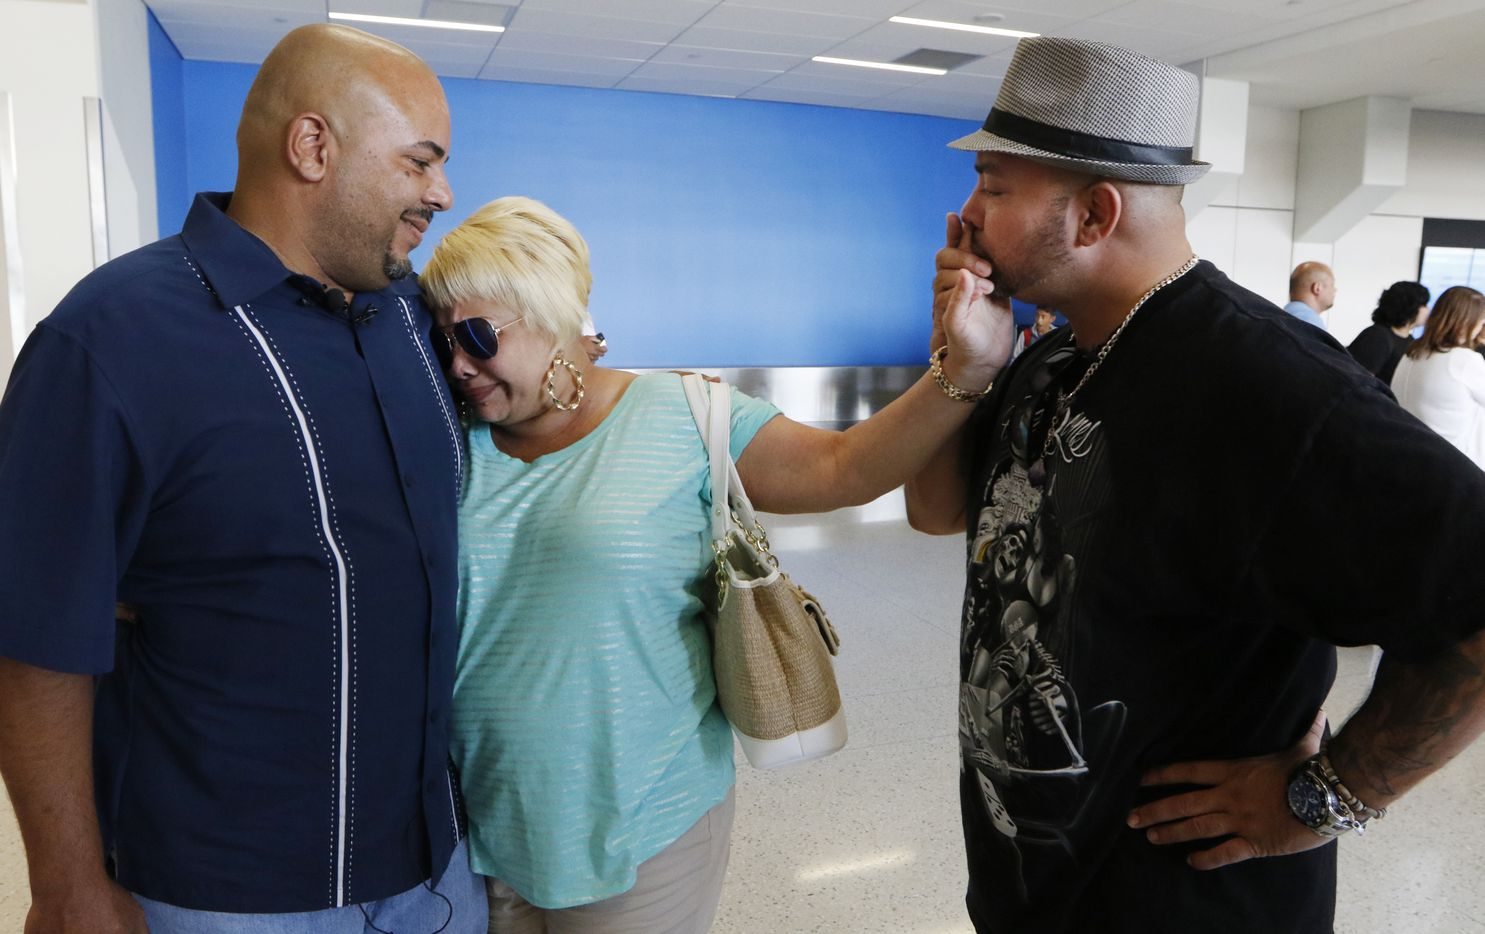 Anthony Wiggs (left) and Raymond Ramirez meet their biological mother, Elsie Ramirez, for the first time at DFW International Airport. The men were separated from their mother as infants, but a DNA search led them to her 46 years later.